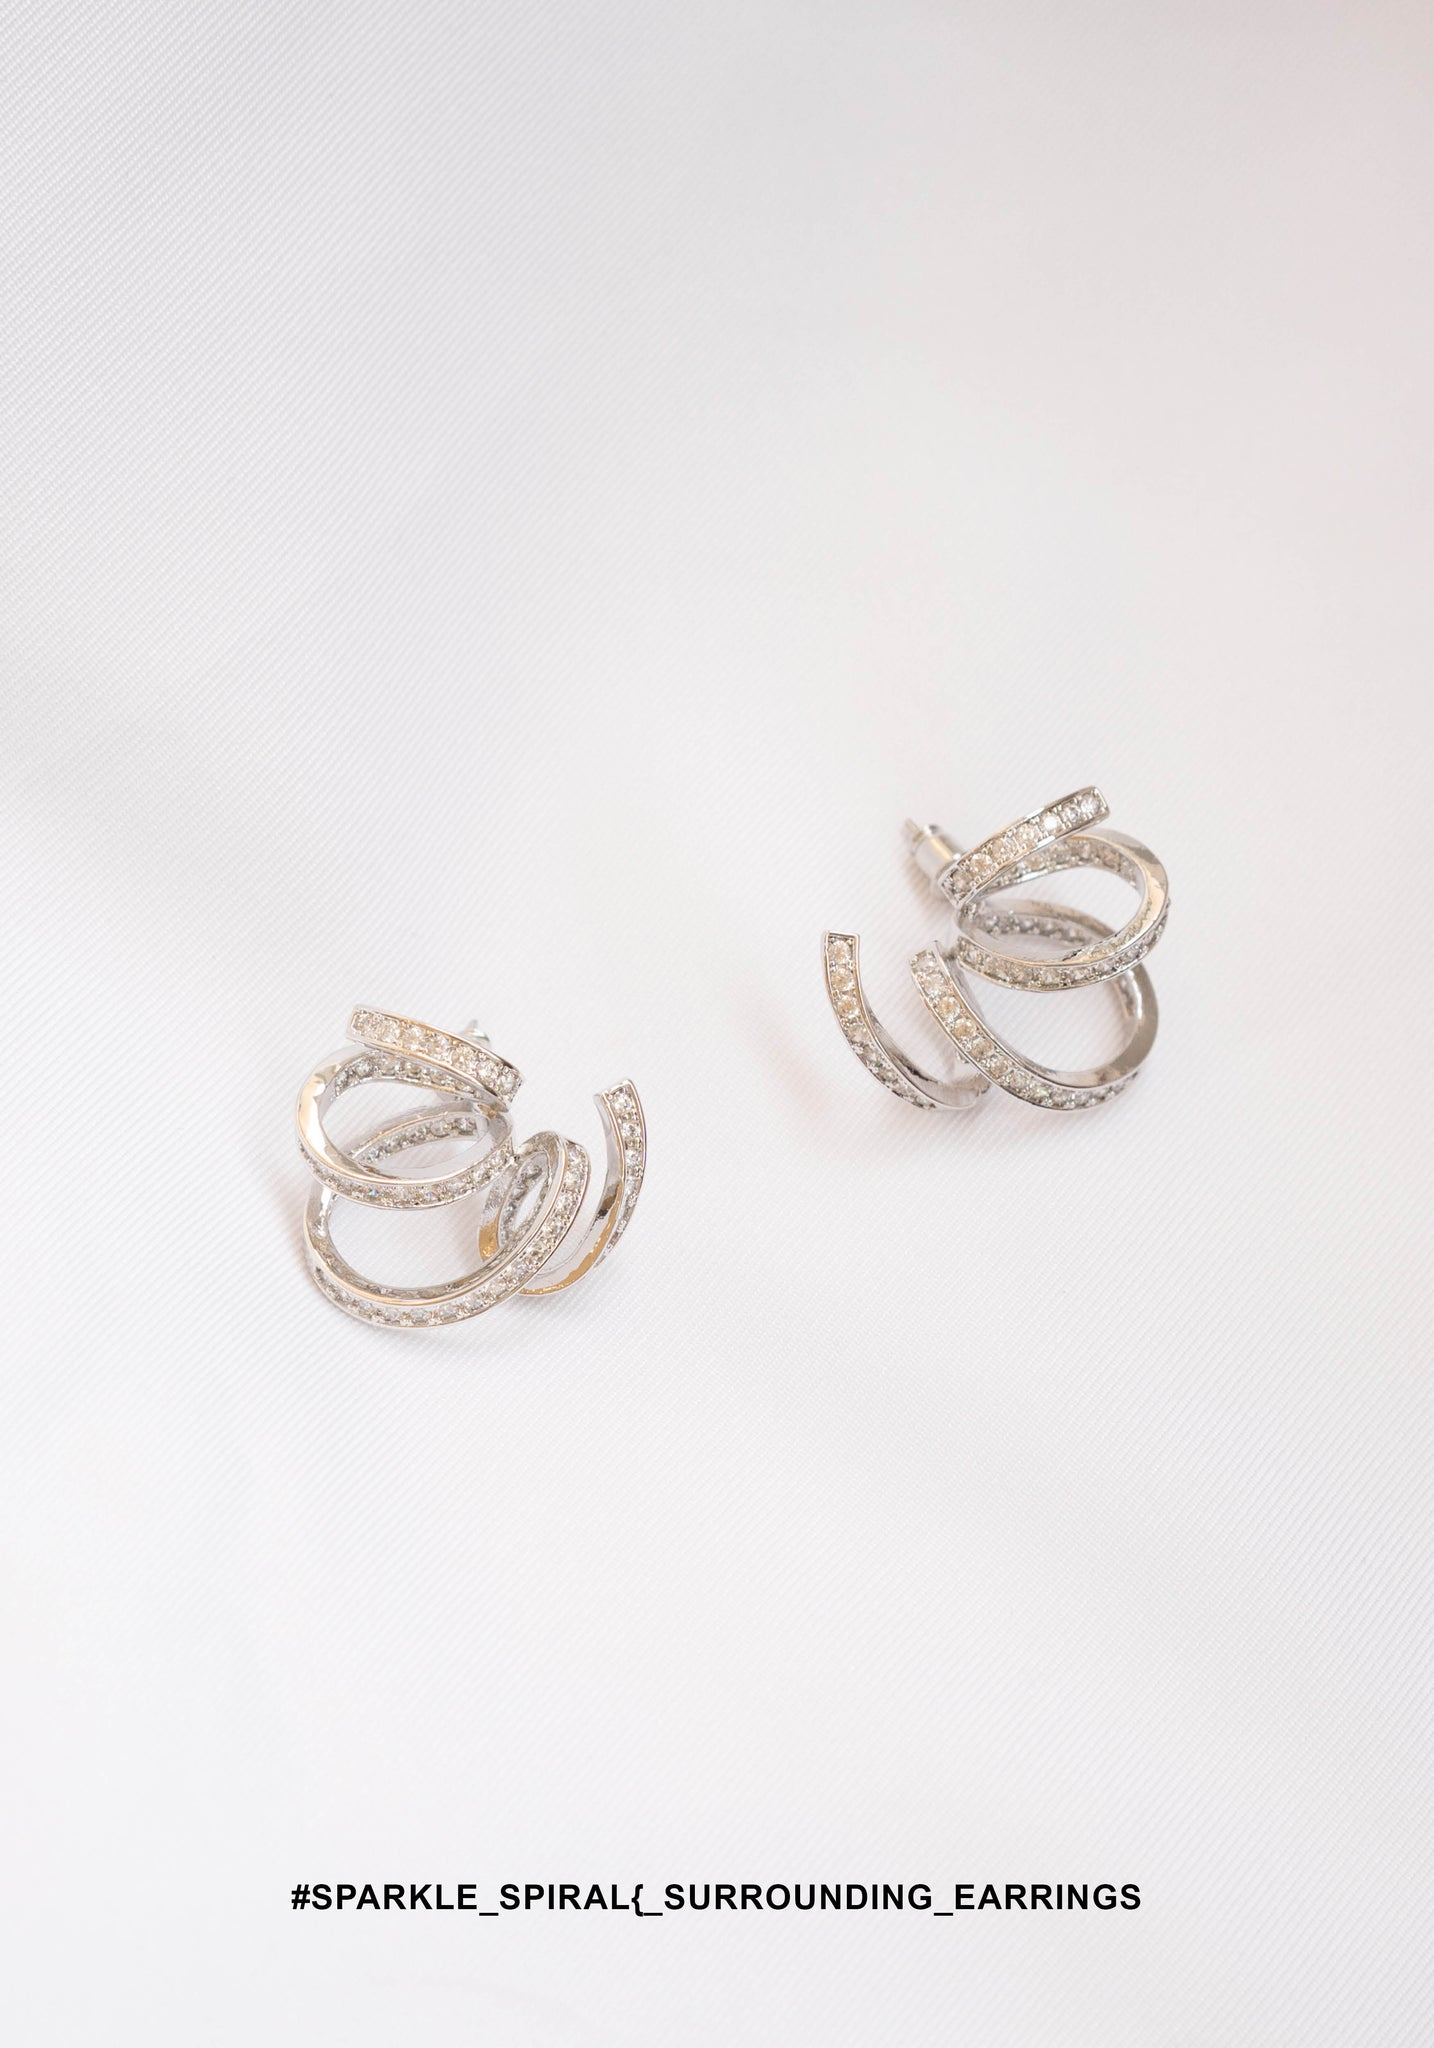 Sparkle Spiral Surrounding Earrings - whoami